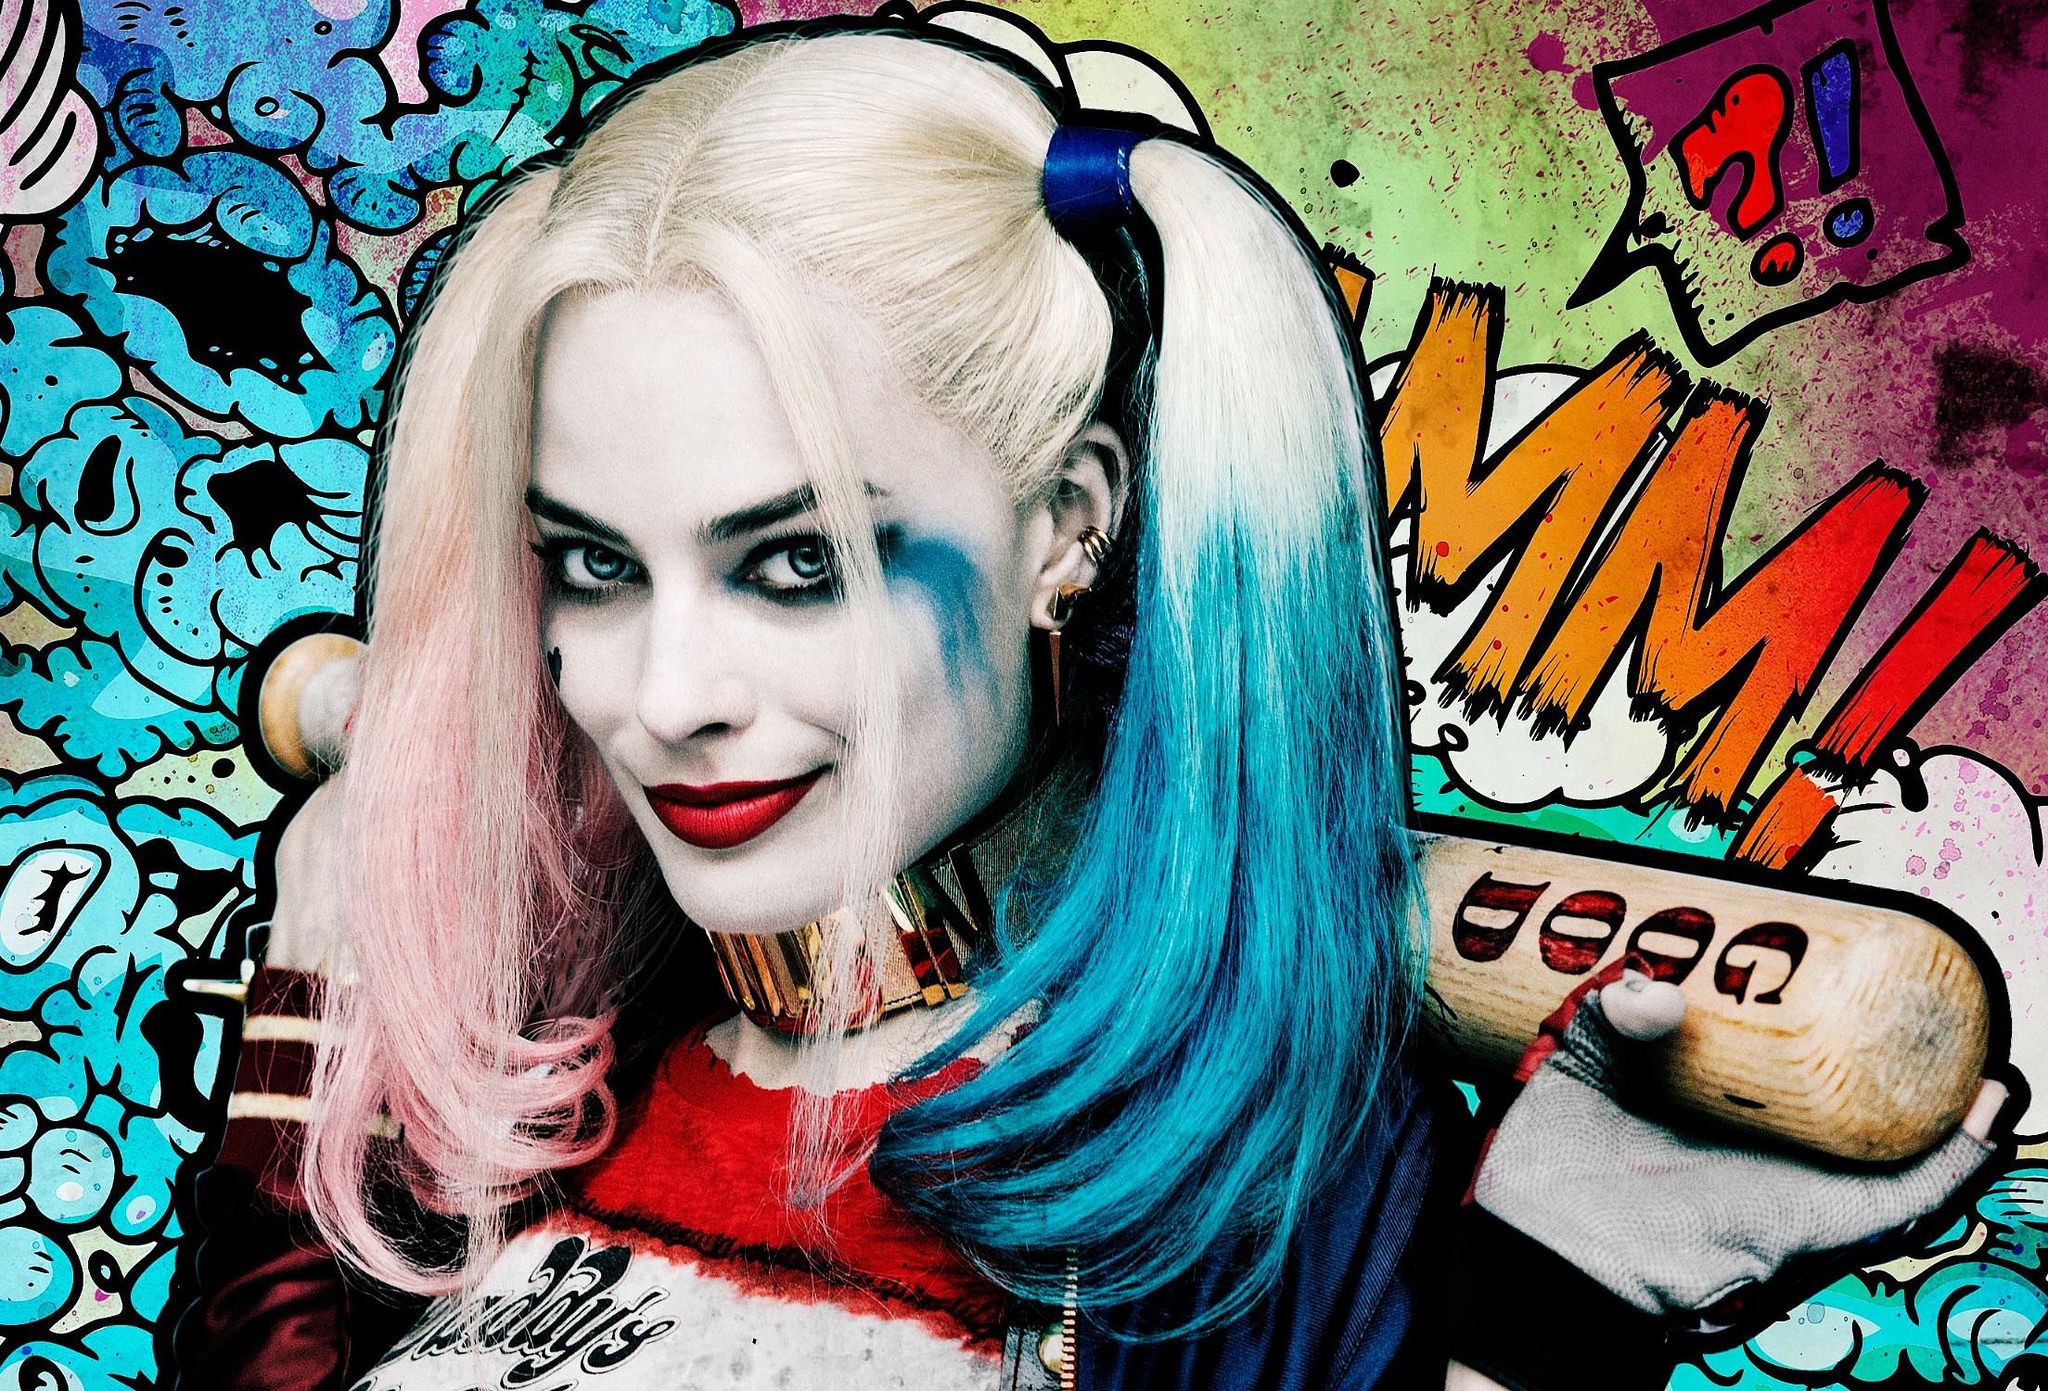 2048x1391 Suicide-Squad-Harley-Quinn-Wallpaper-HD-Download-by-